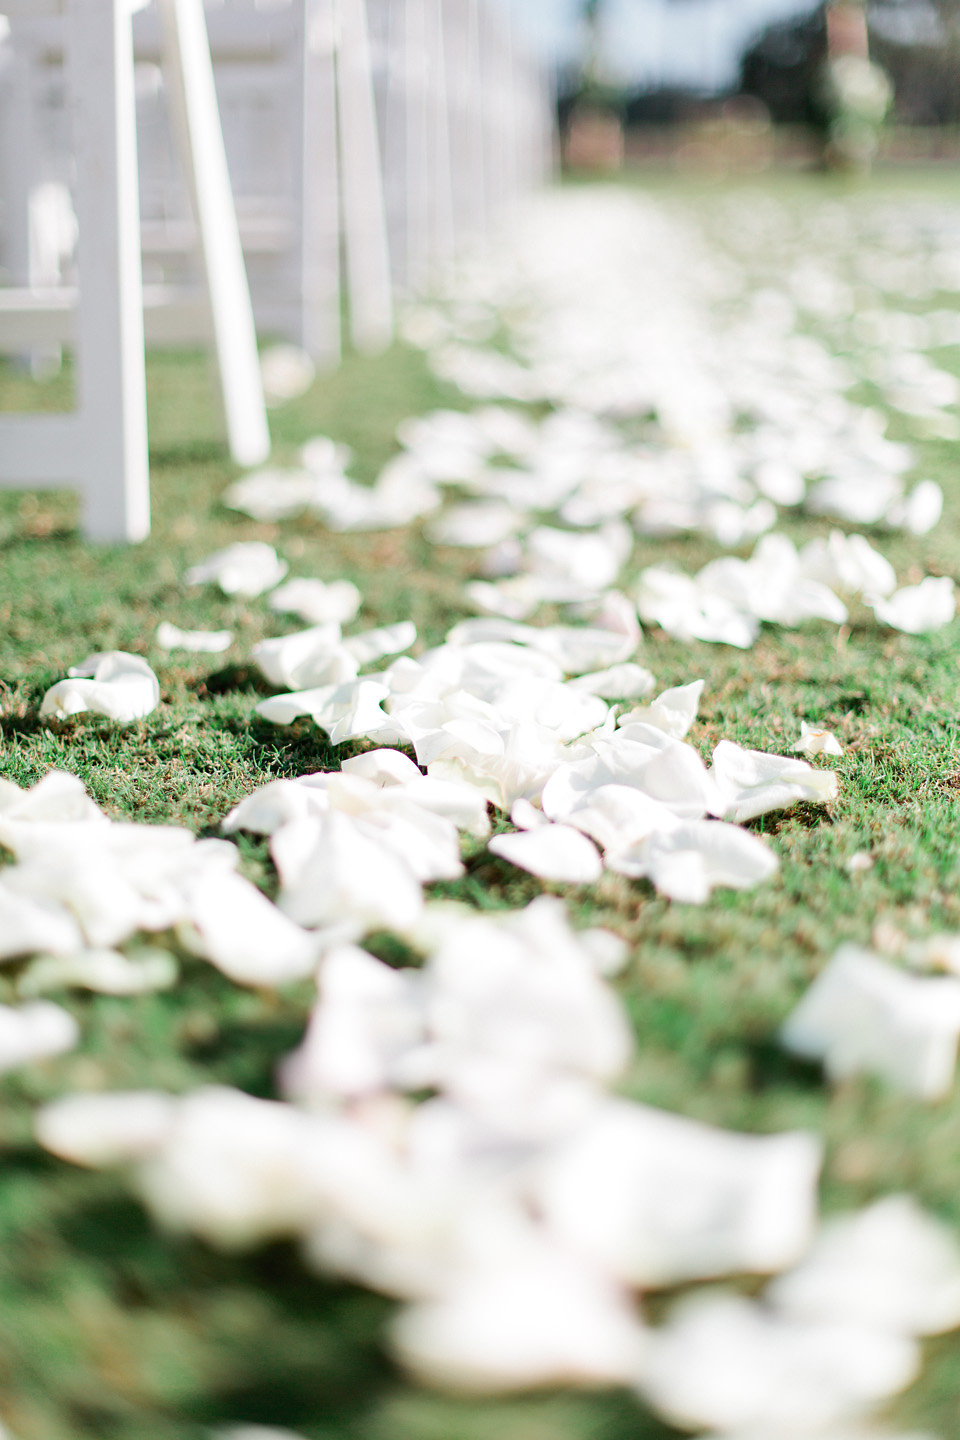 Ivory rose petals lining the ceremony aisle  Blush Wedding at TPC Sawgrass Wedding Ponte Vedra Beach  Jacksonville Wedding Planner Blue Ribbon Weddings  Jacksonville Wedding Photographer Debra Eby Photography  Wedding Ceremony & Reception at TPC Sawgrass Jacksonville